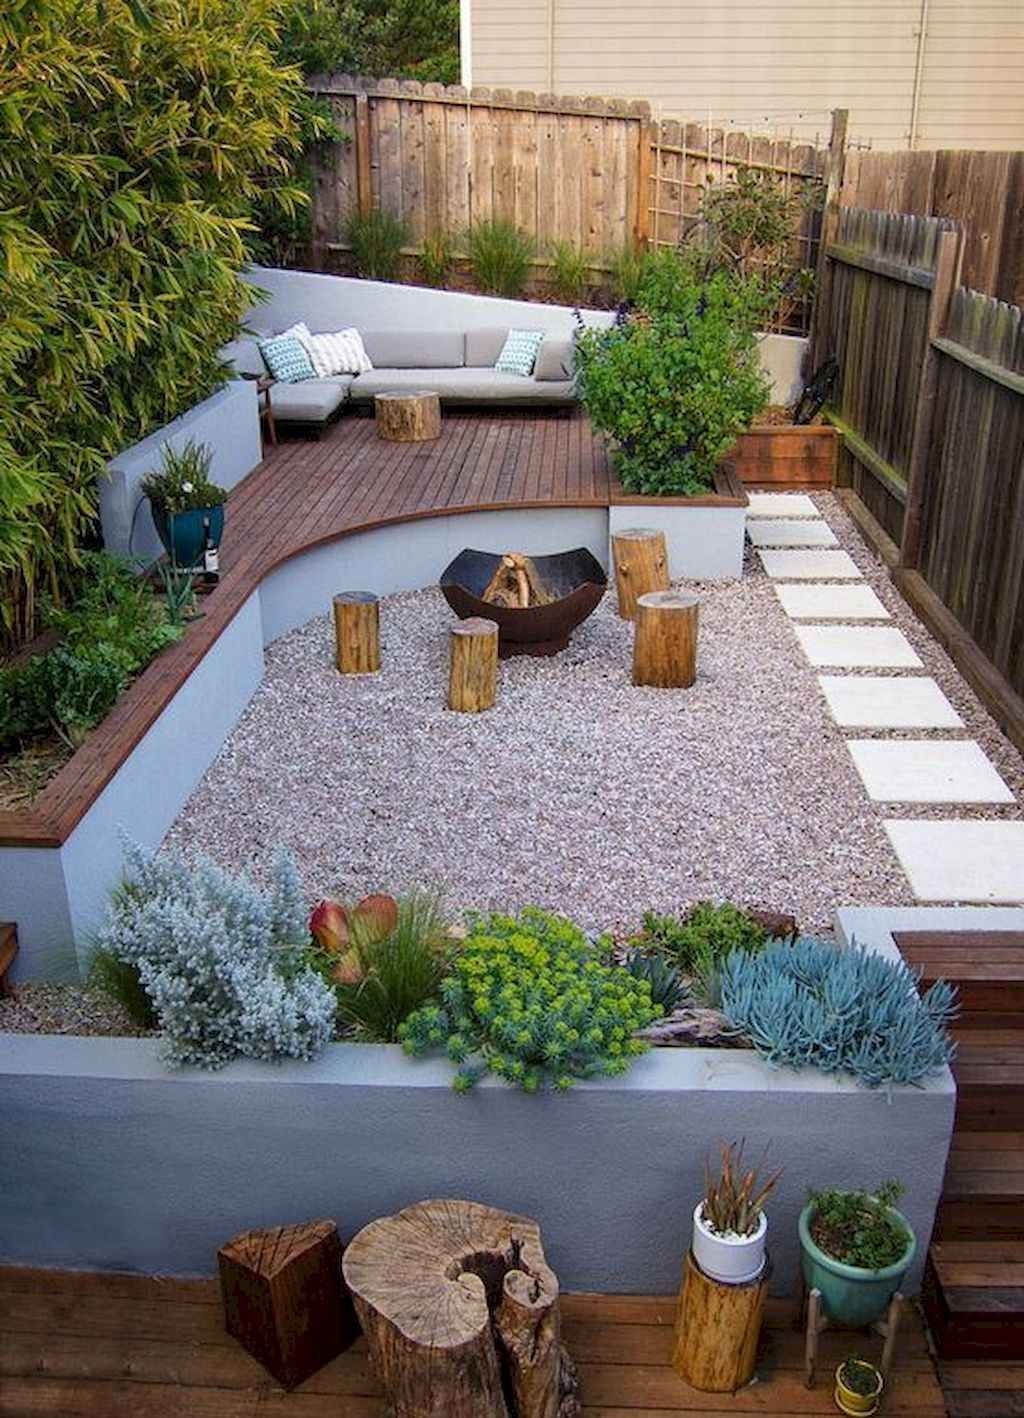 48 cozy backyard seating area ideas in 2020 | Small ...